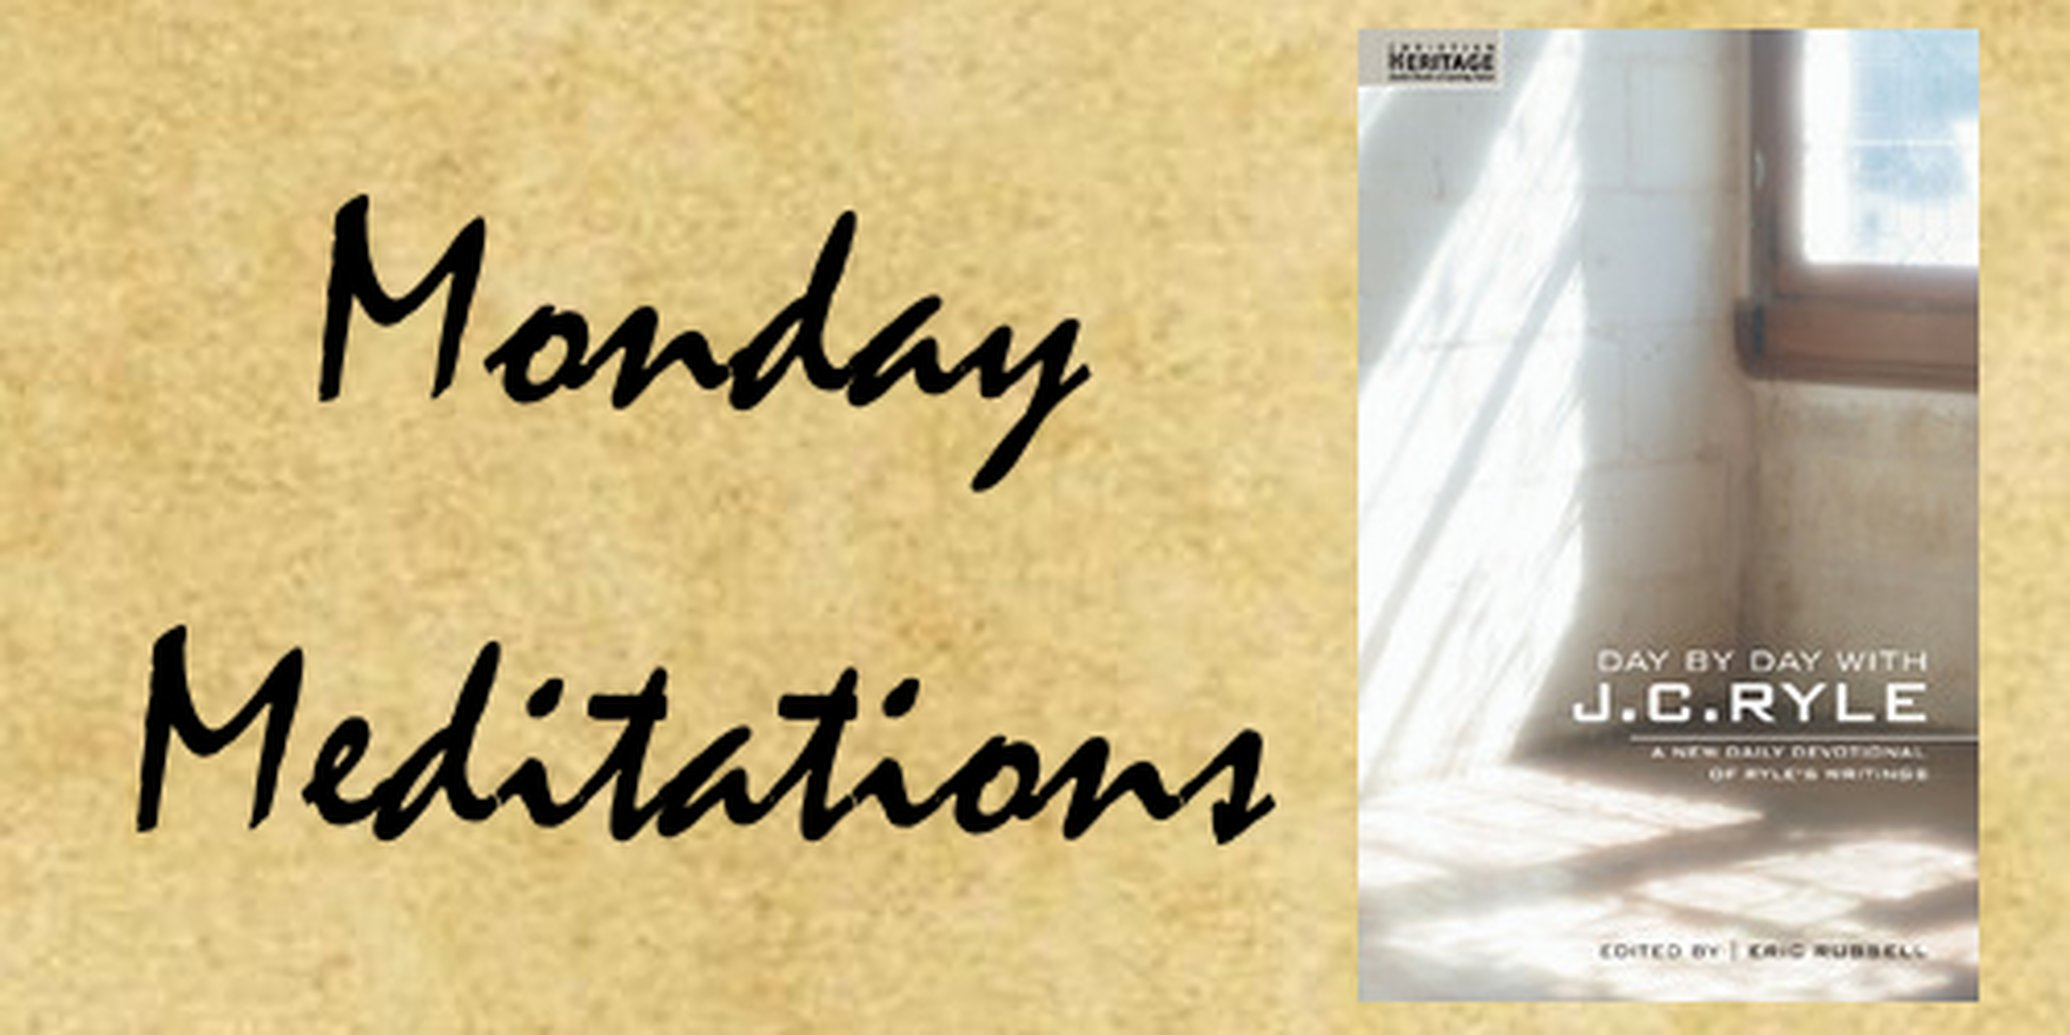 Monday Meditations: The Cross